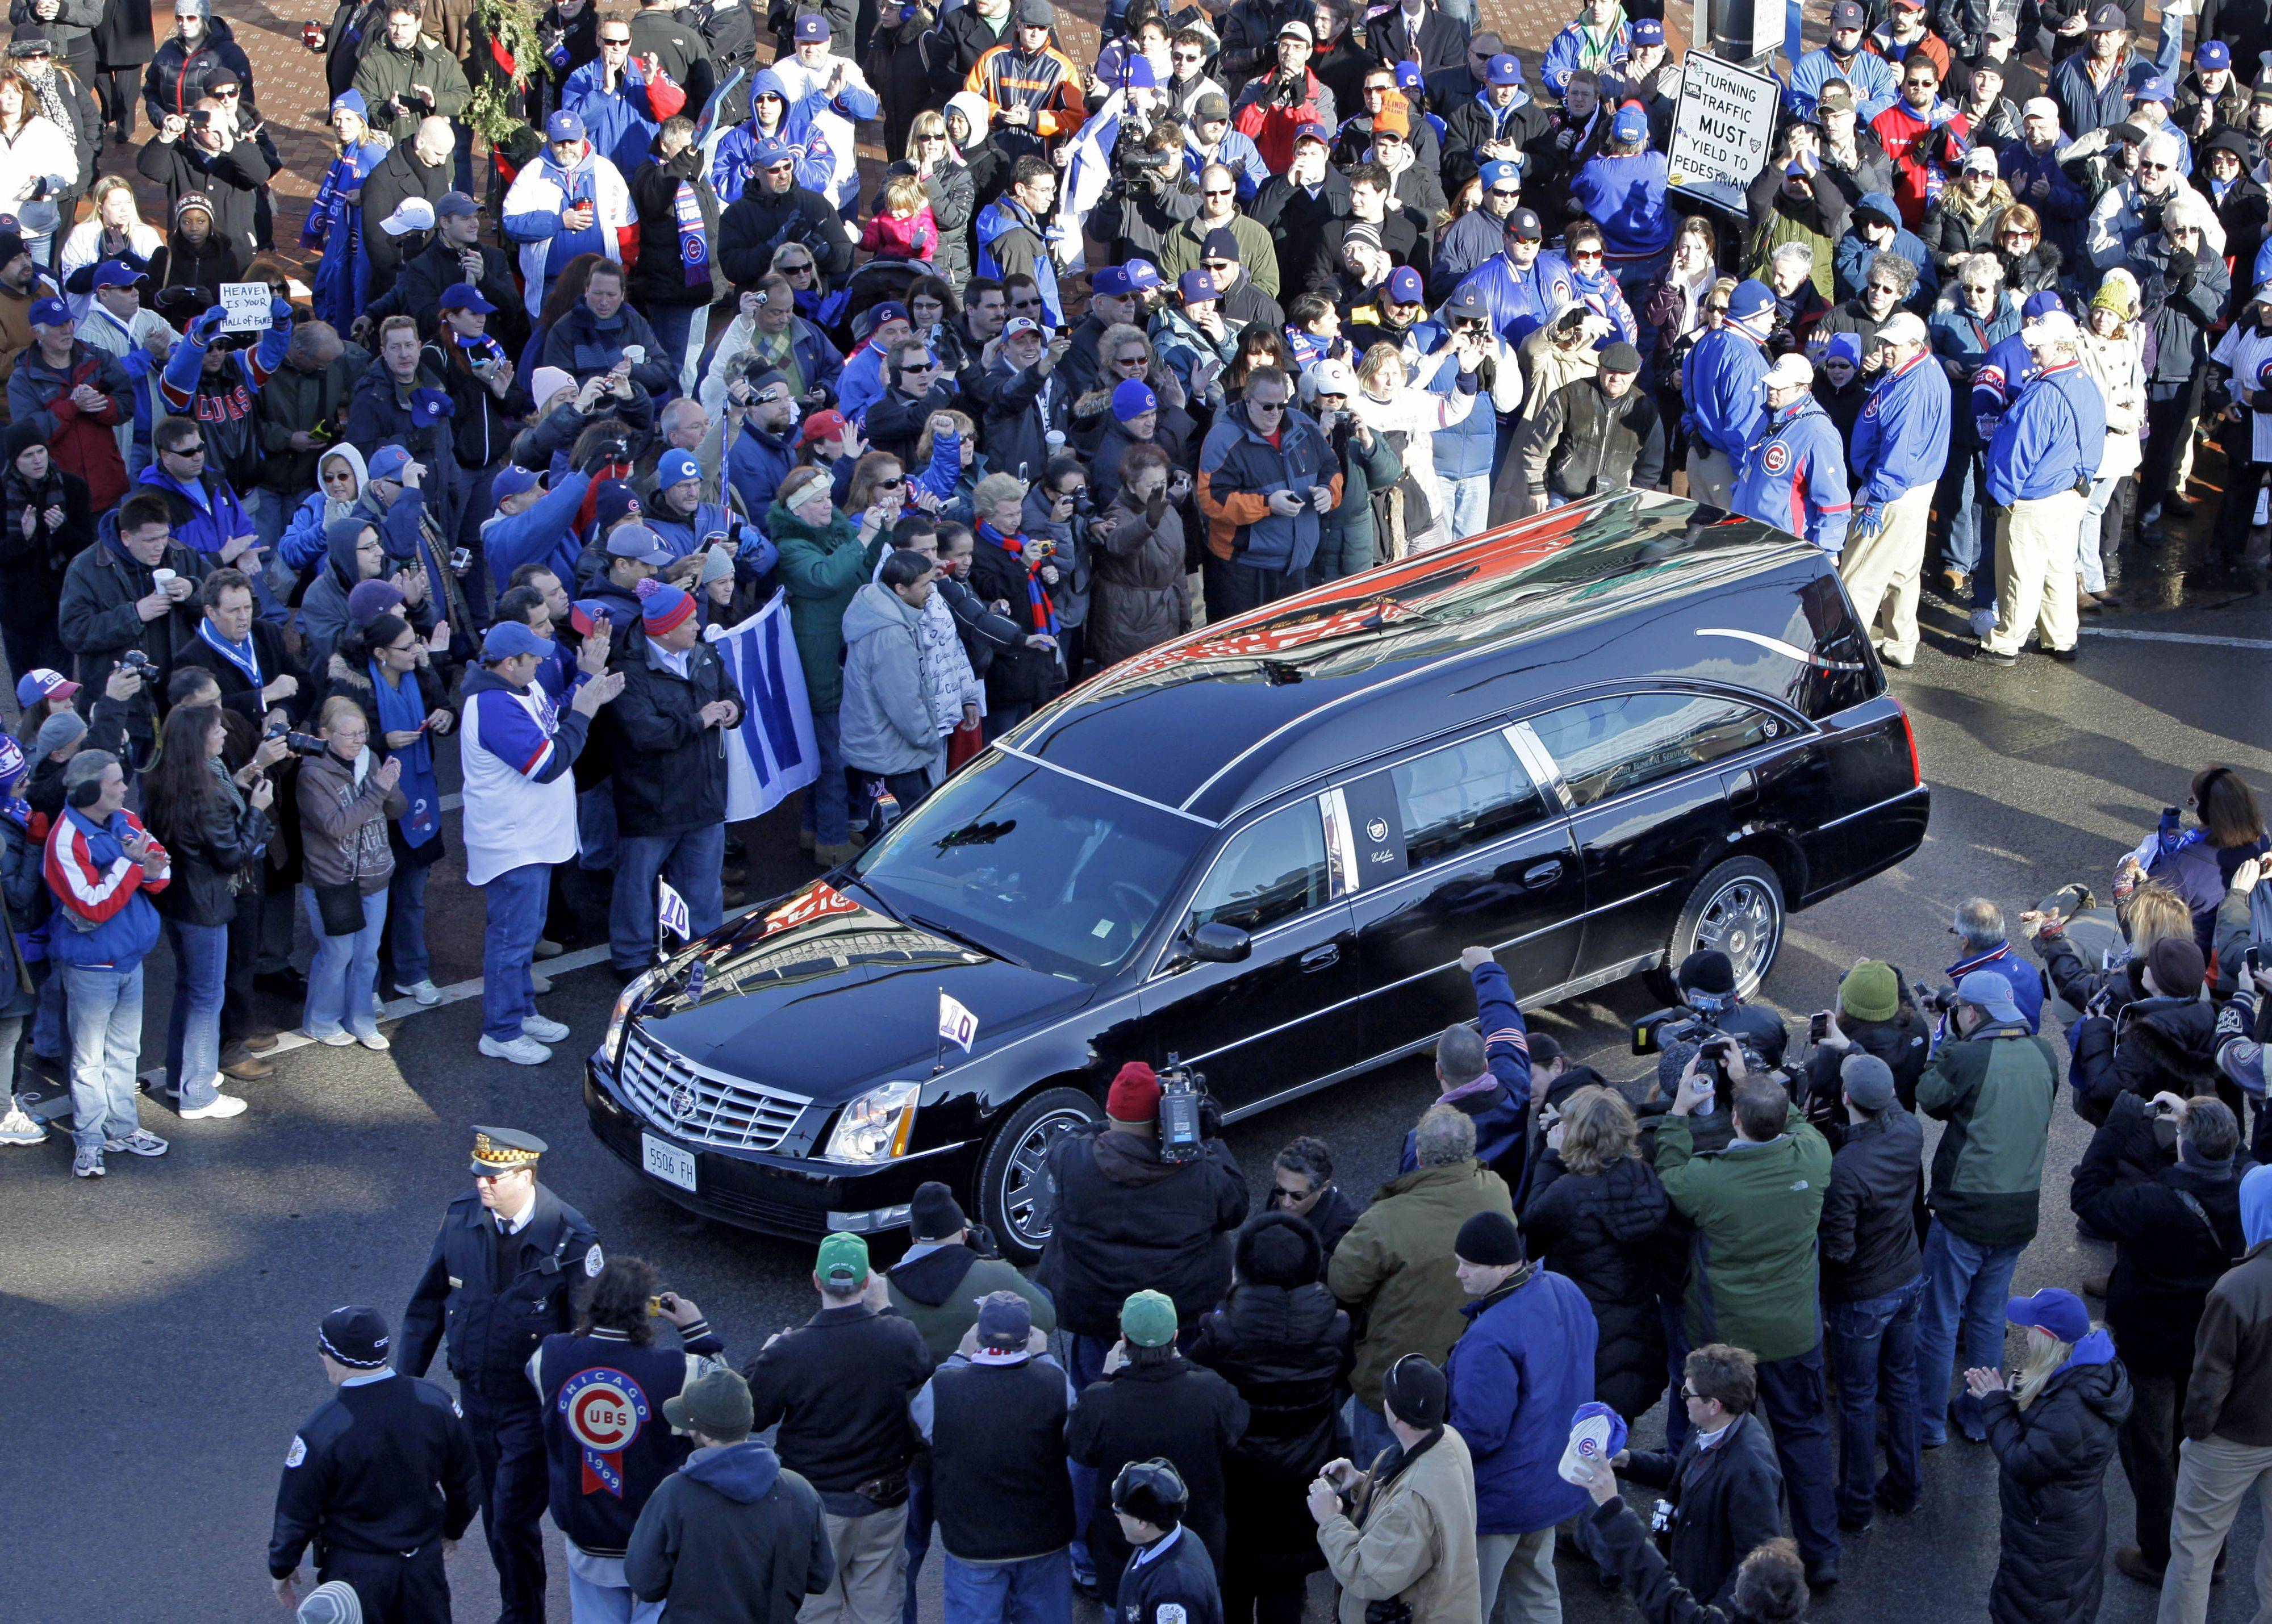 Baseball fans pay their respect as the funeral procession for Ron Santo drives past Wrigley Field.